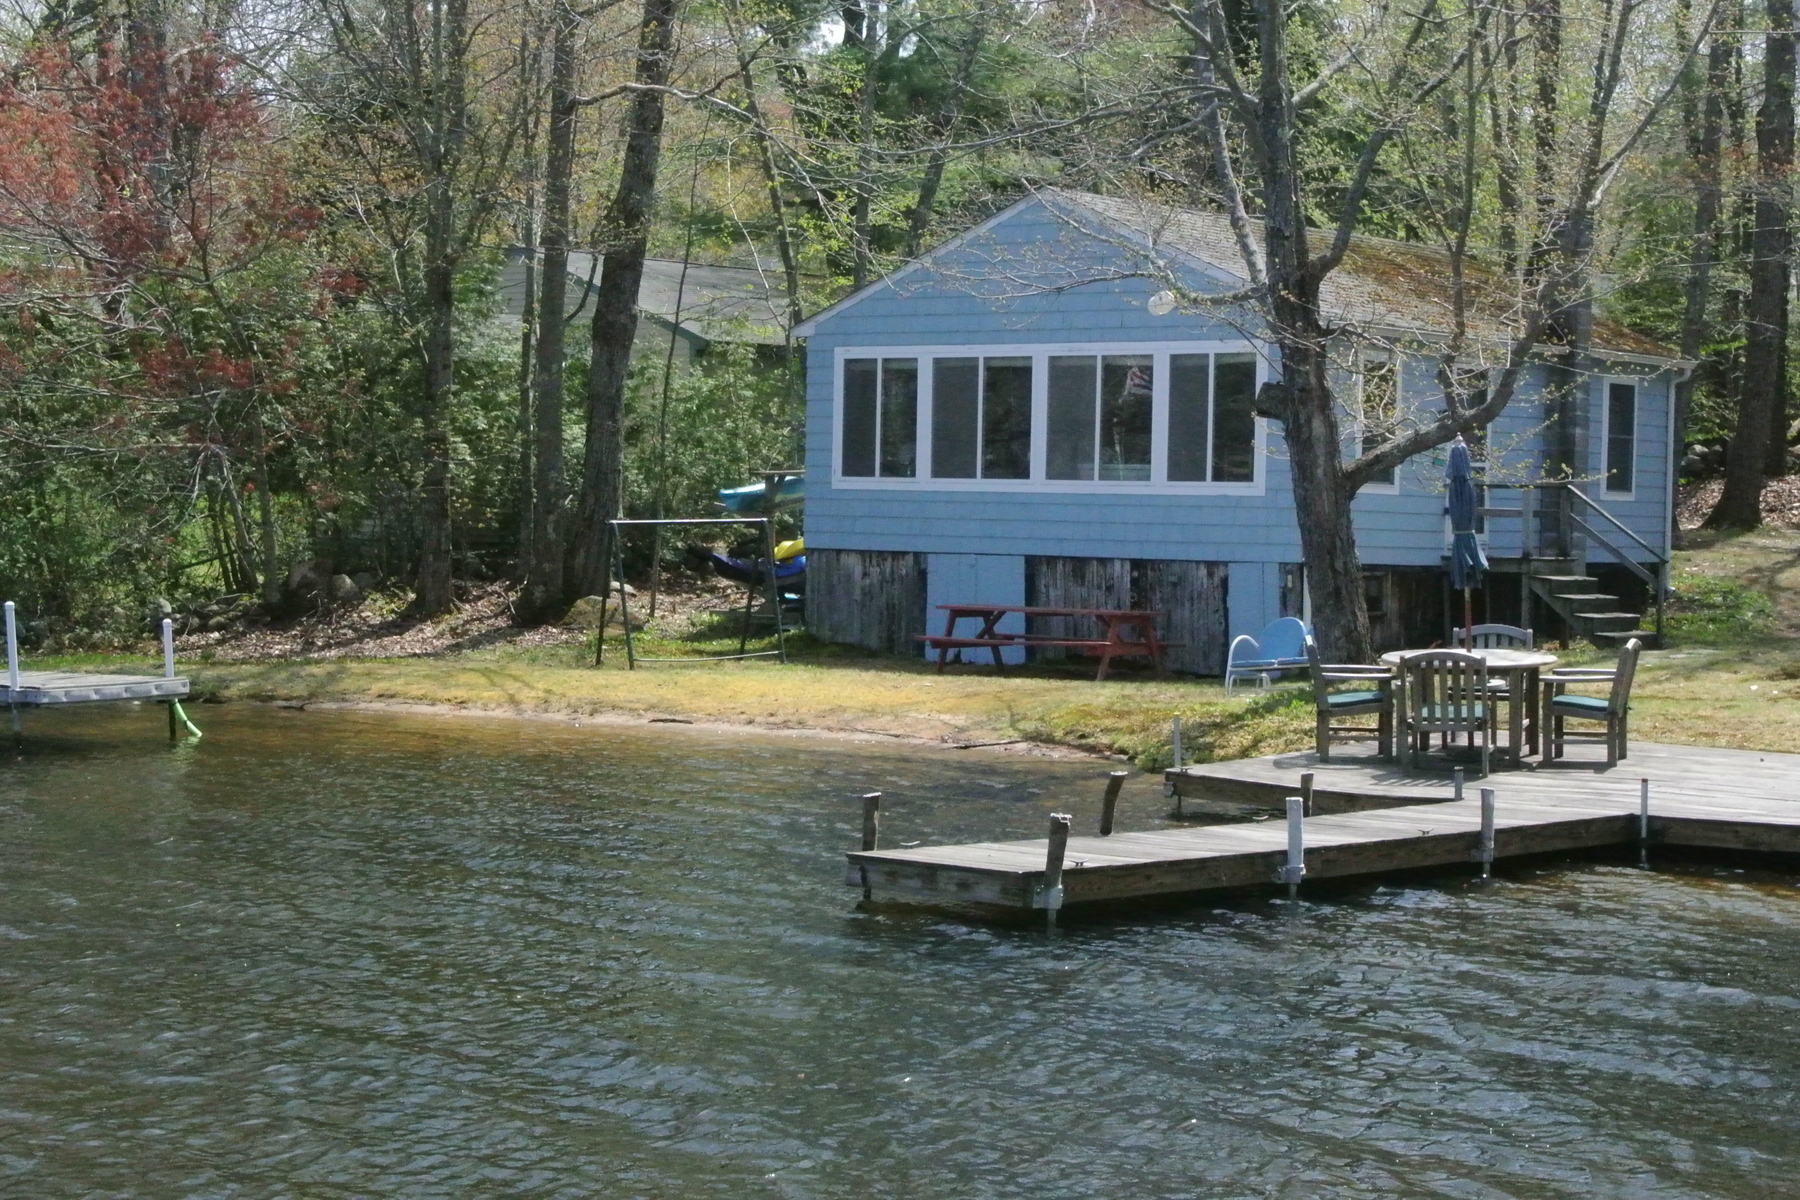 Single Family Home for Sale at 3 Fire Road 151, Strafford Strafford, New Hampshire 03884 United States